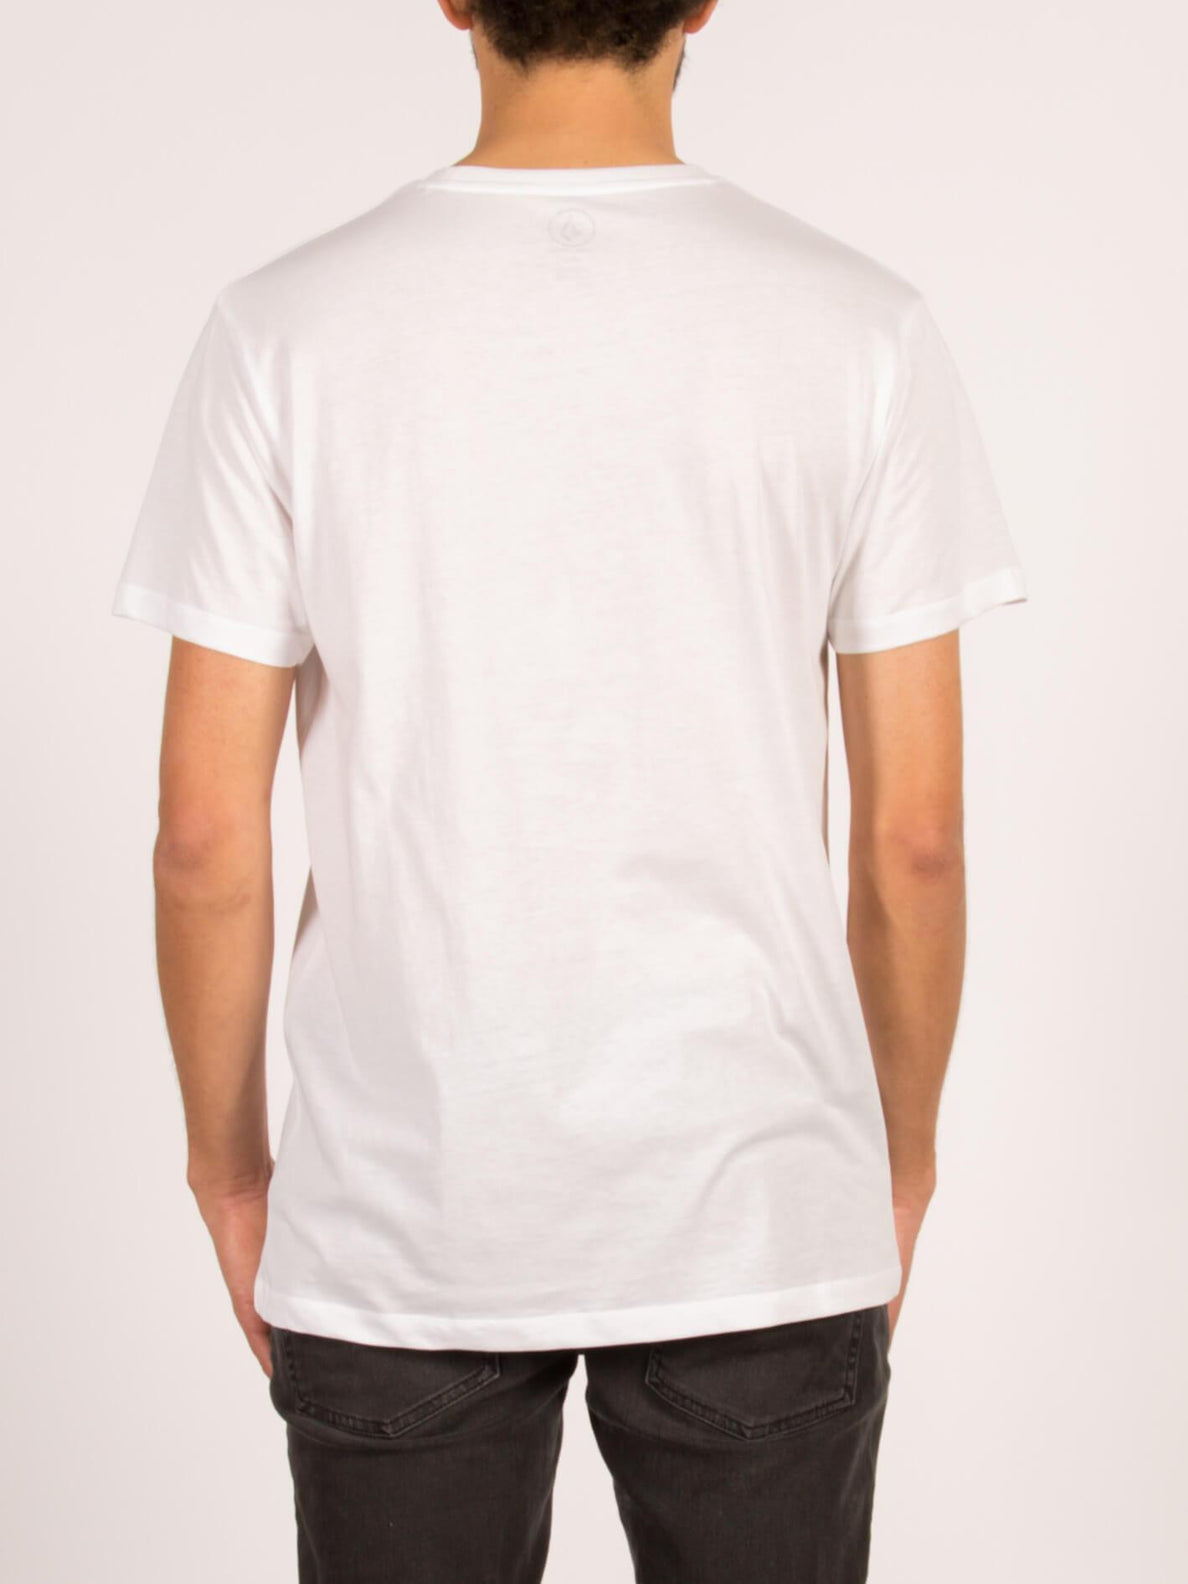 T-Shirt Weave Lightweight - White